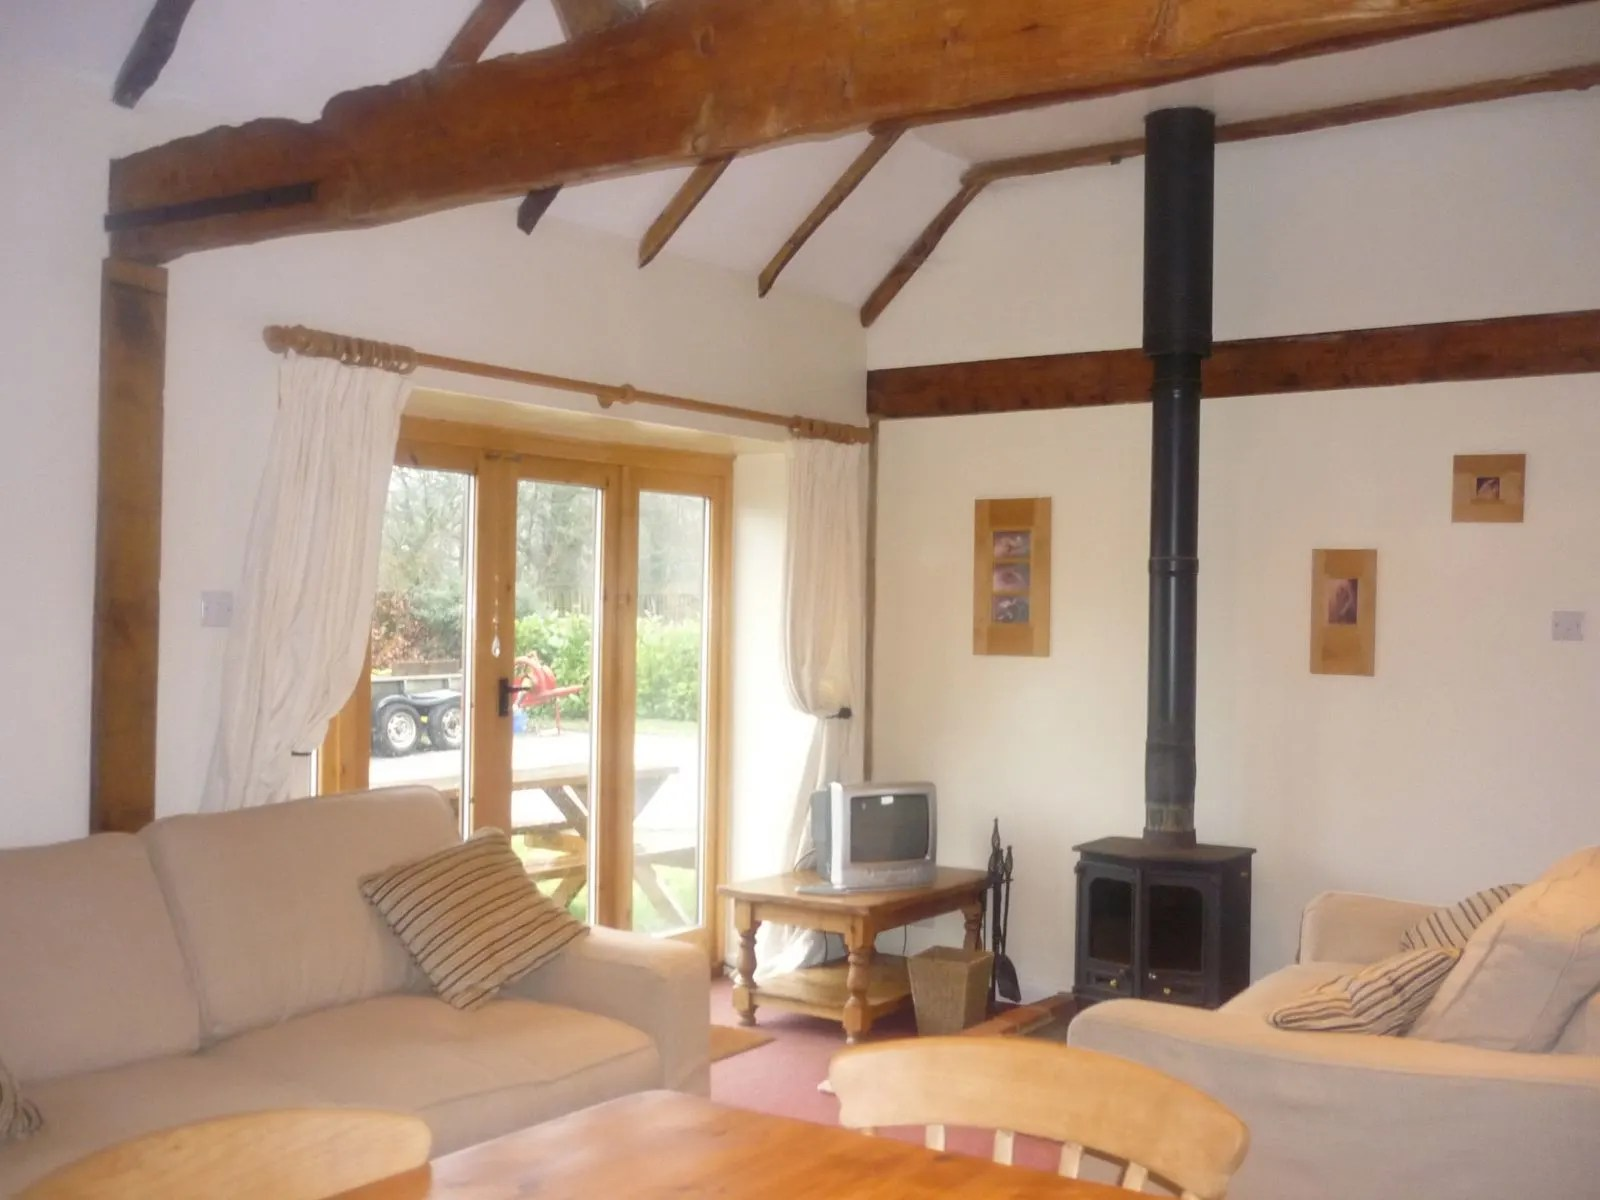 Bed And Breakfast Petersfield Hampshire Bed Breakfast Copper Beeches Petersfield Trivago Co Uk